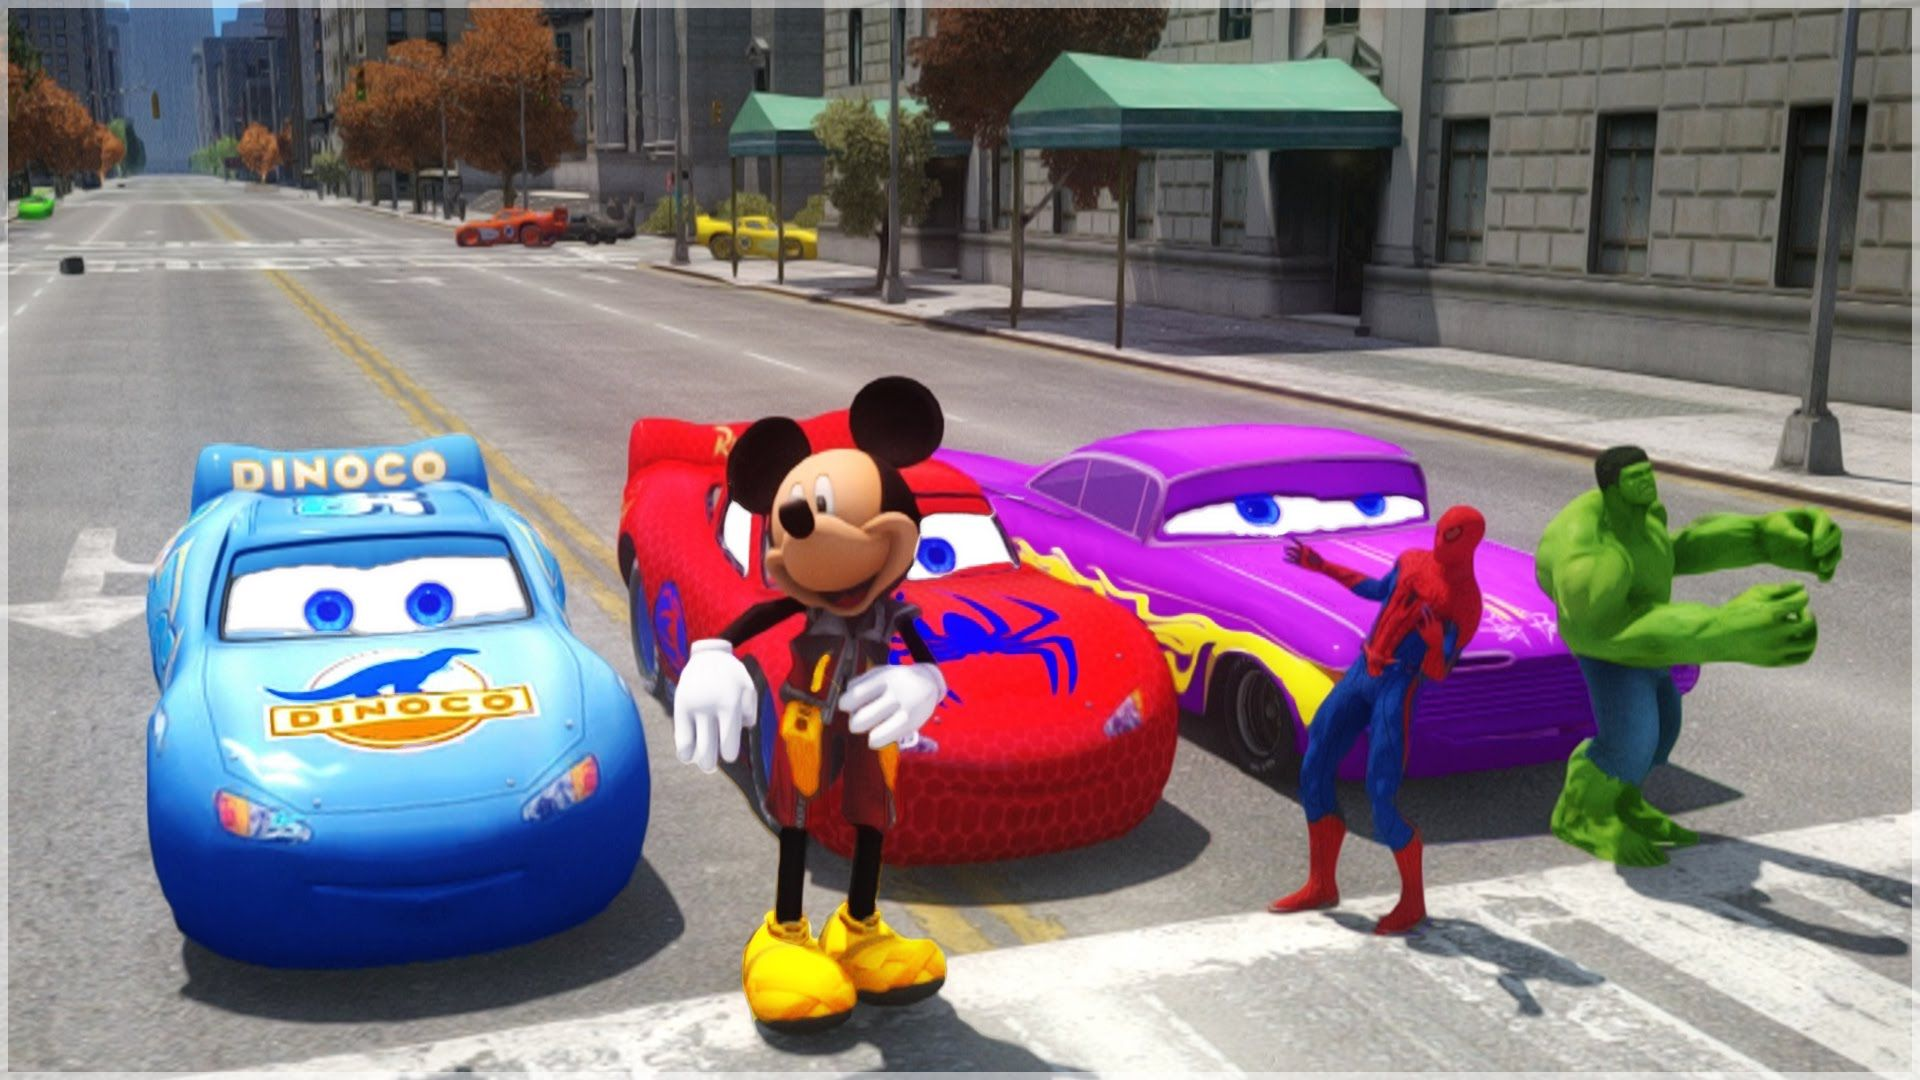 News HULK, MICKEY MOUSE & SPIDER-MAN drive Disney Pixar Cars LIGHTNING MCQUEEN, DINOCO & RAMONE  The Amazing SPIDER-MAN from Marvel driving his spiderman Mc queen cars! & The Incredible HULK from marvel comics & avengers driving Ramone ... rate... http://showbizlikes.com/hulk-mickey-mouse-spider-man-drive-disney-pixar-cars-lightning-mcqueen-dinoco-ramone/